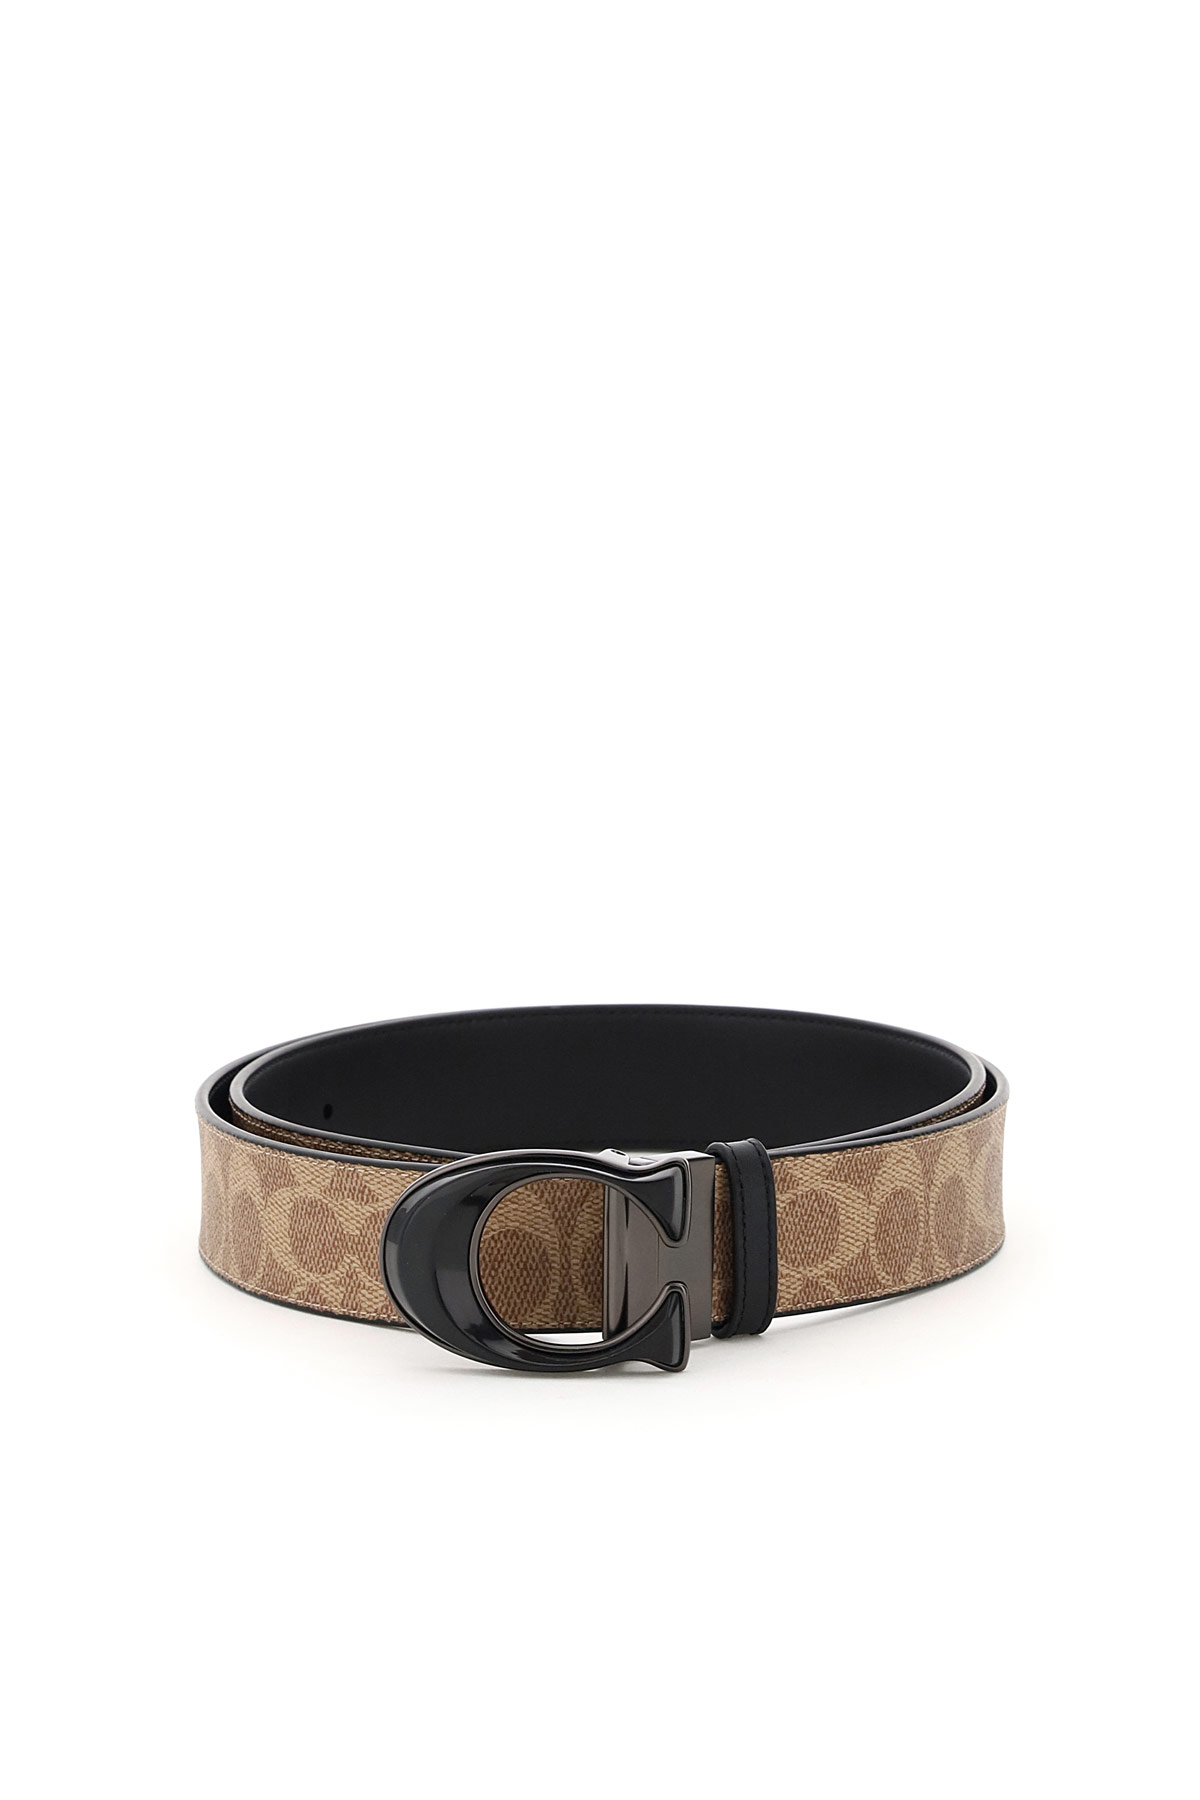 COACH SIGNATURE REVERSIBLE TAILORED BELT 42 Brown, Black Leather